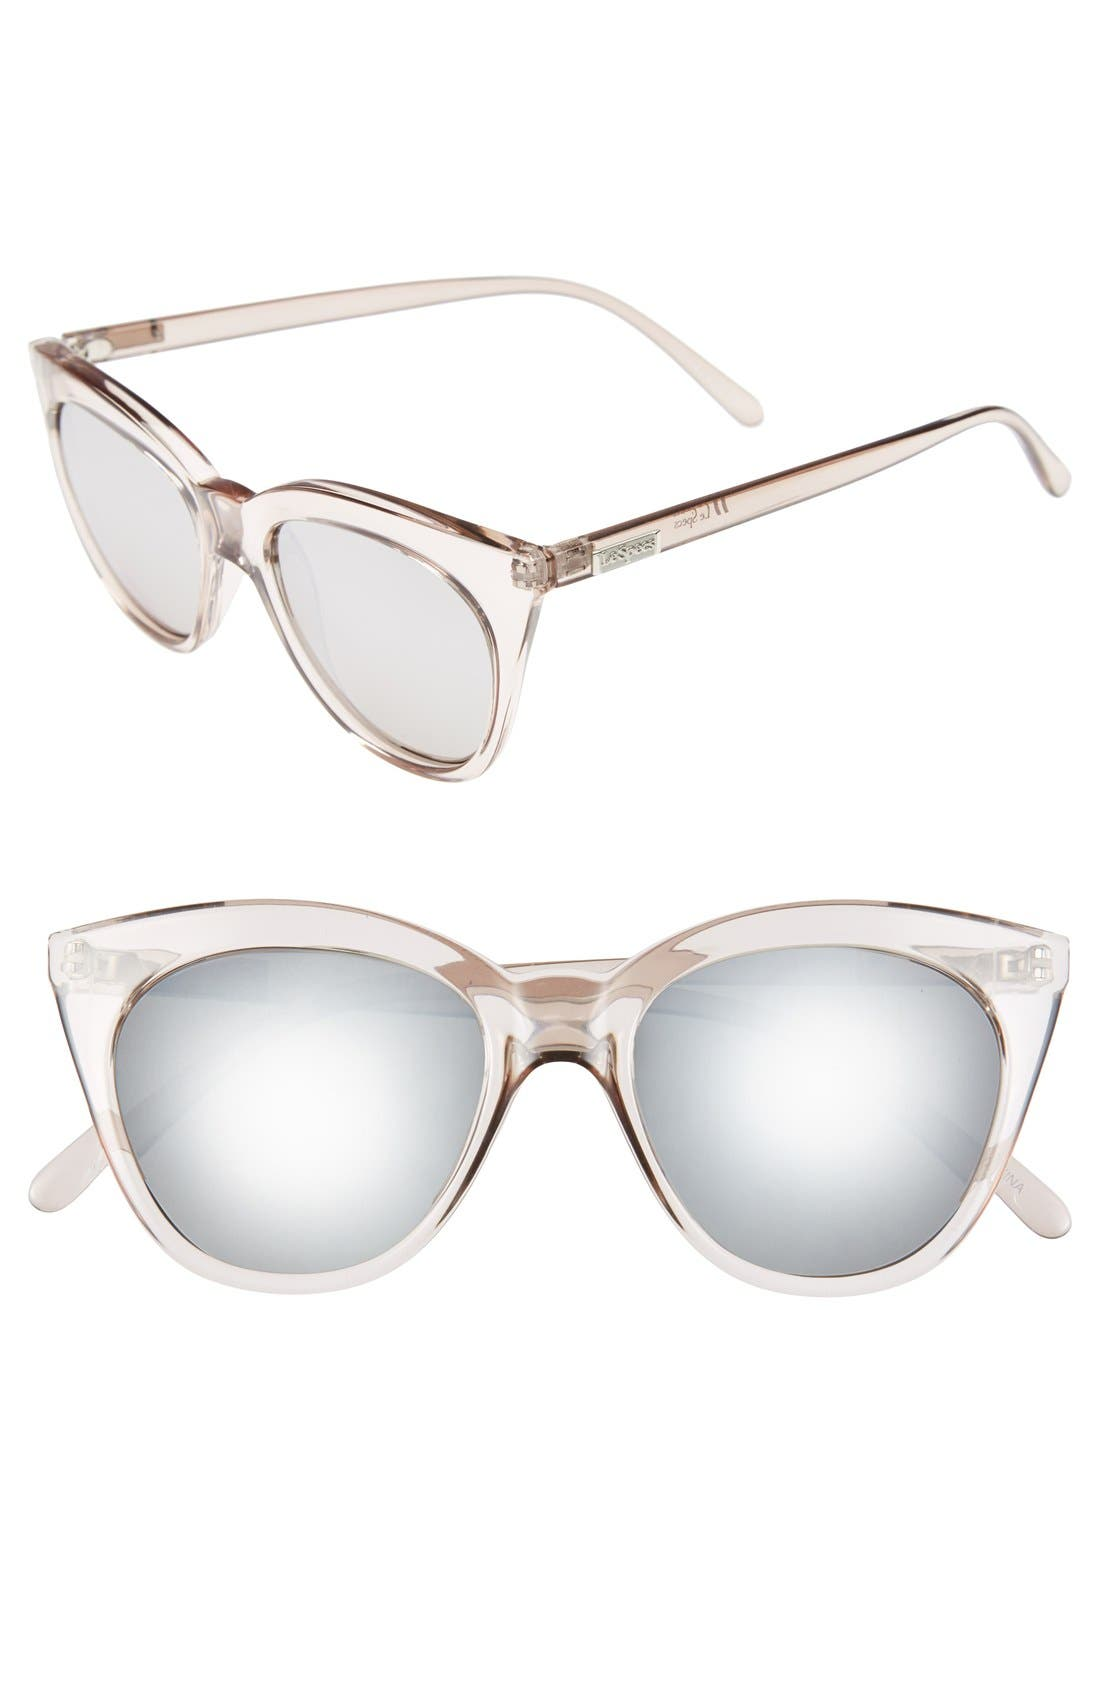 Le Specs Halfmoon Magic 51mm Cat Eye Sunglasses